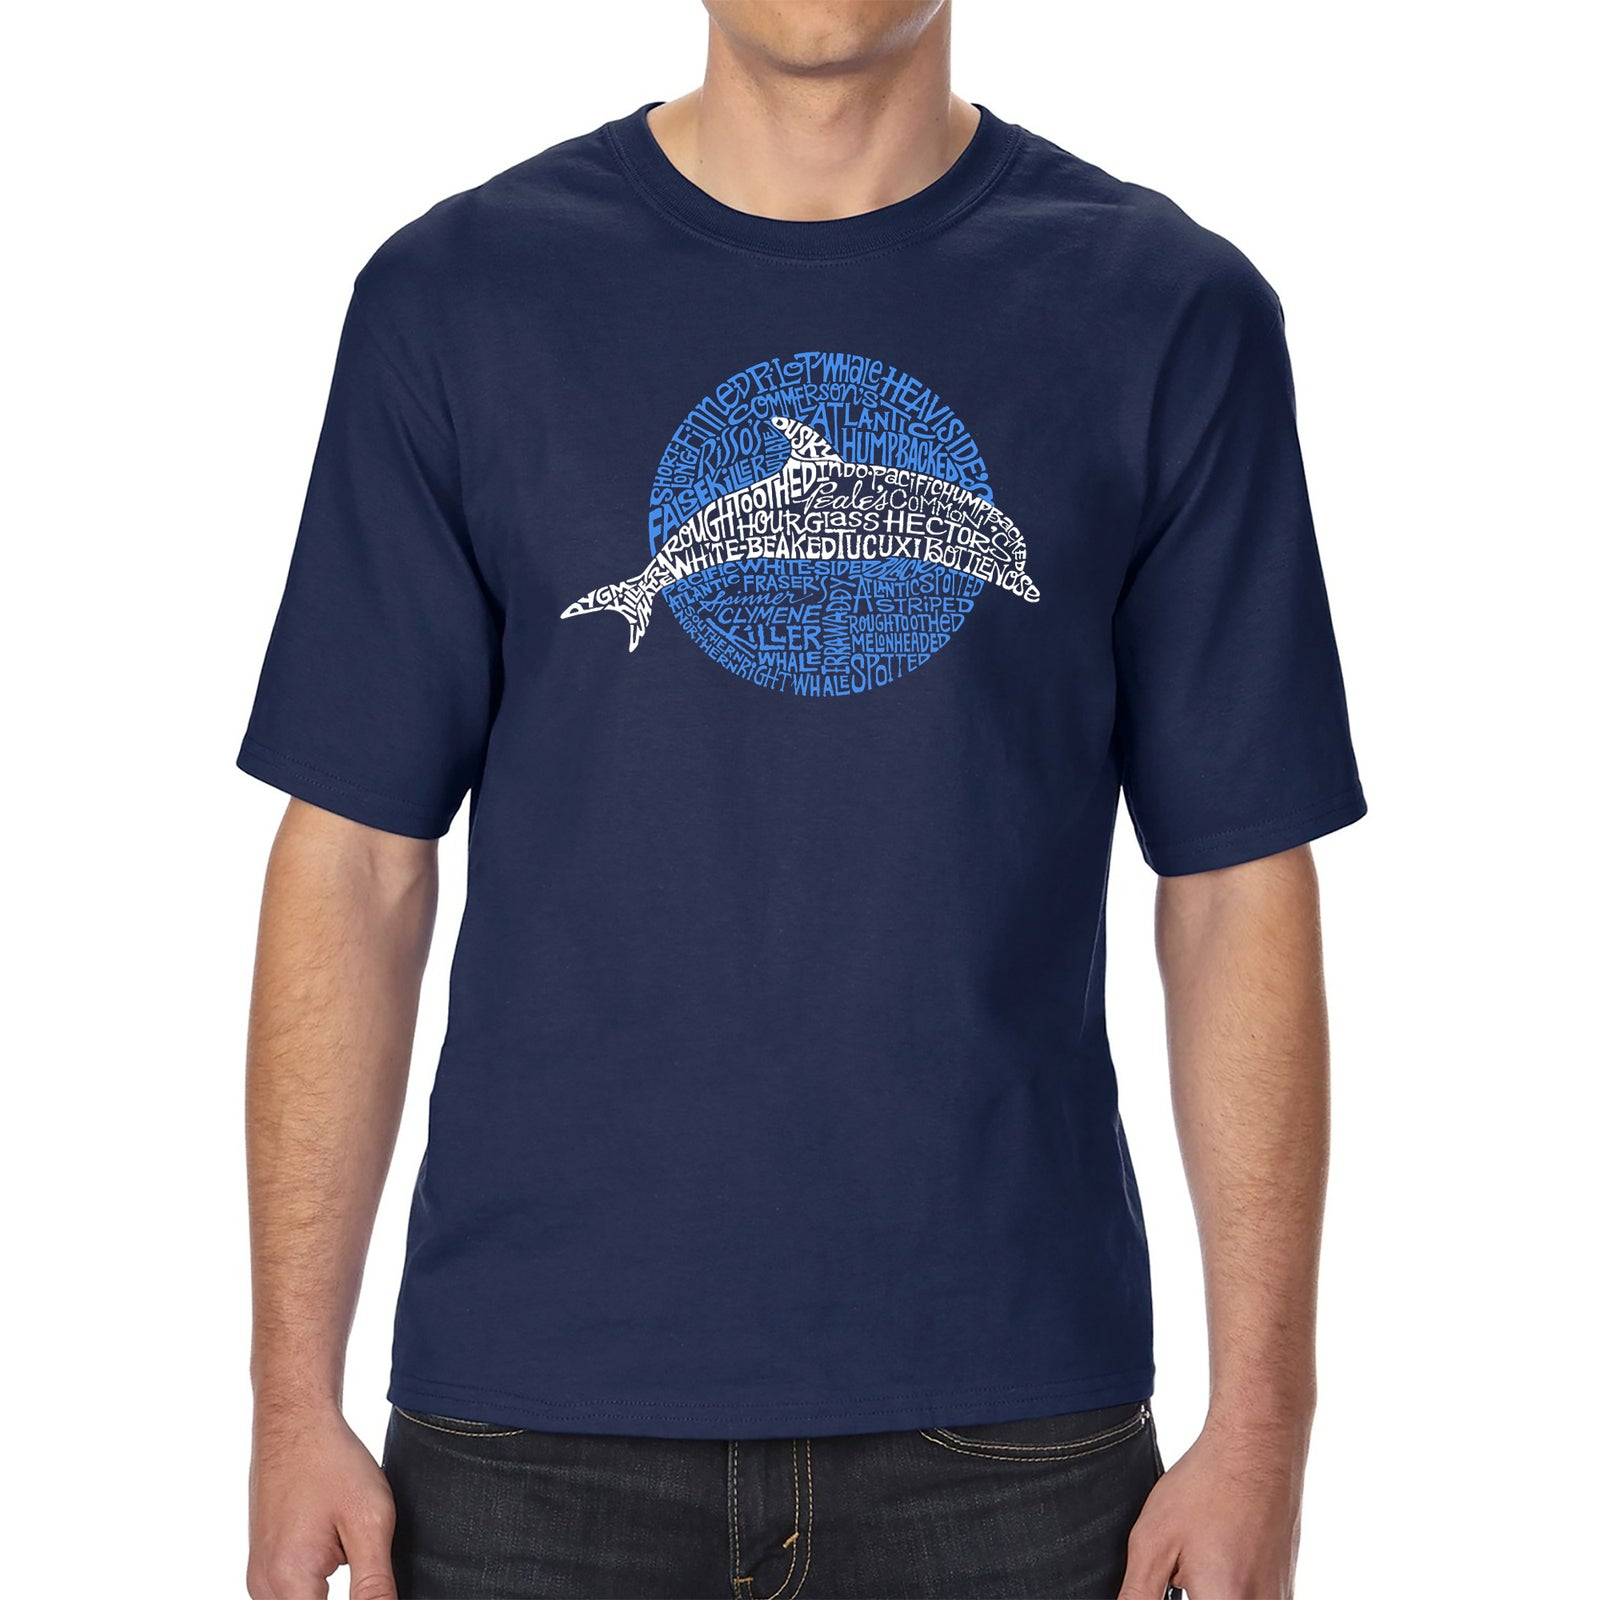 Men's Tall and Long Word Art T-shirt - Species of Dolphin